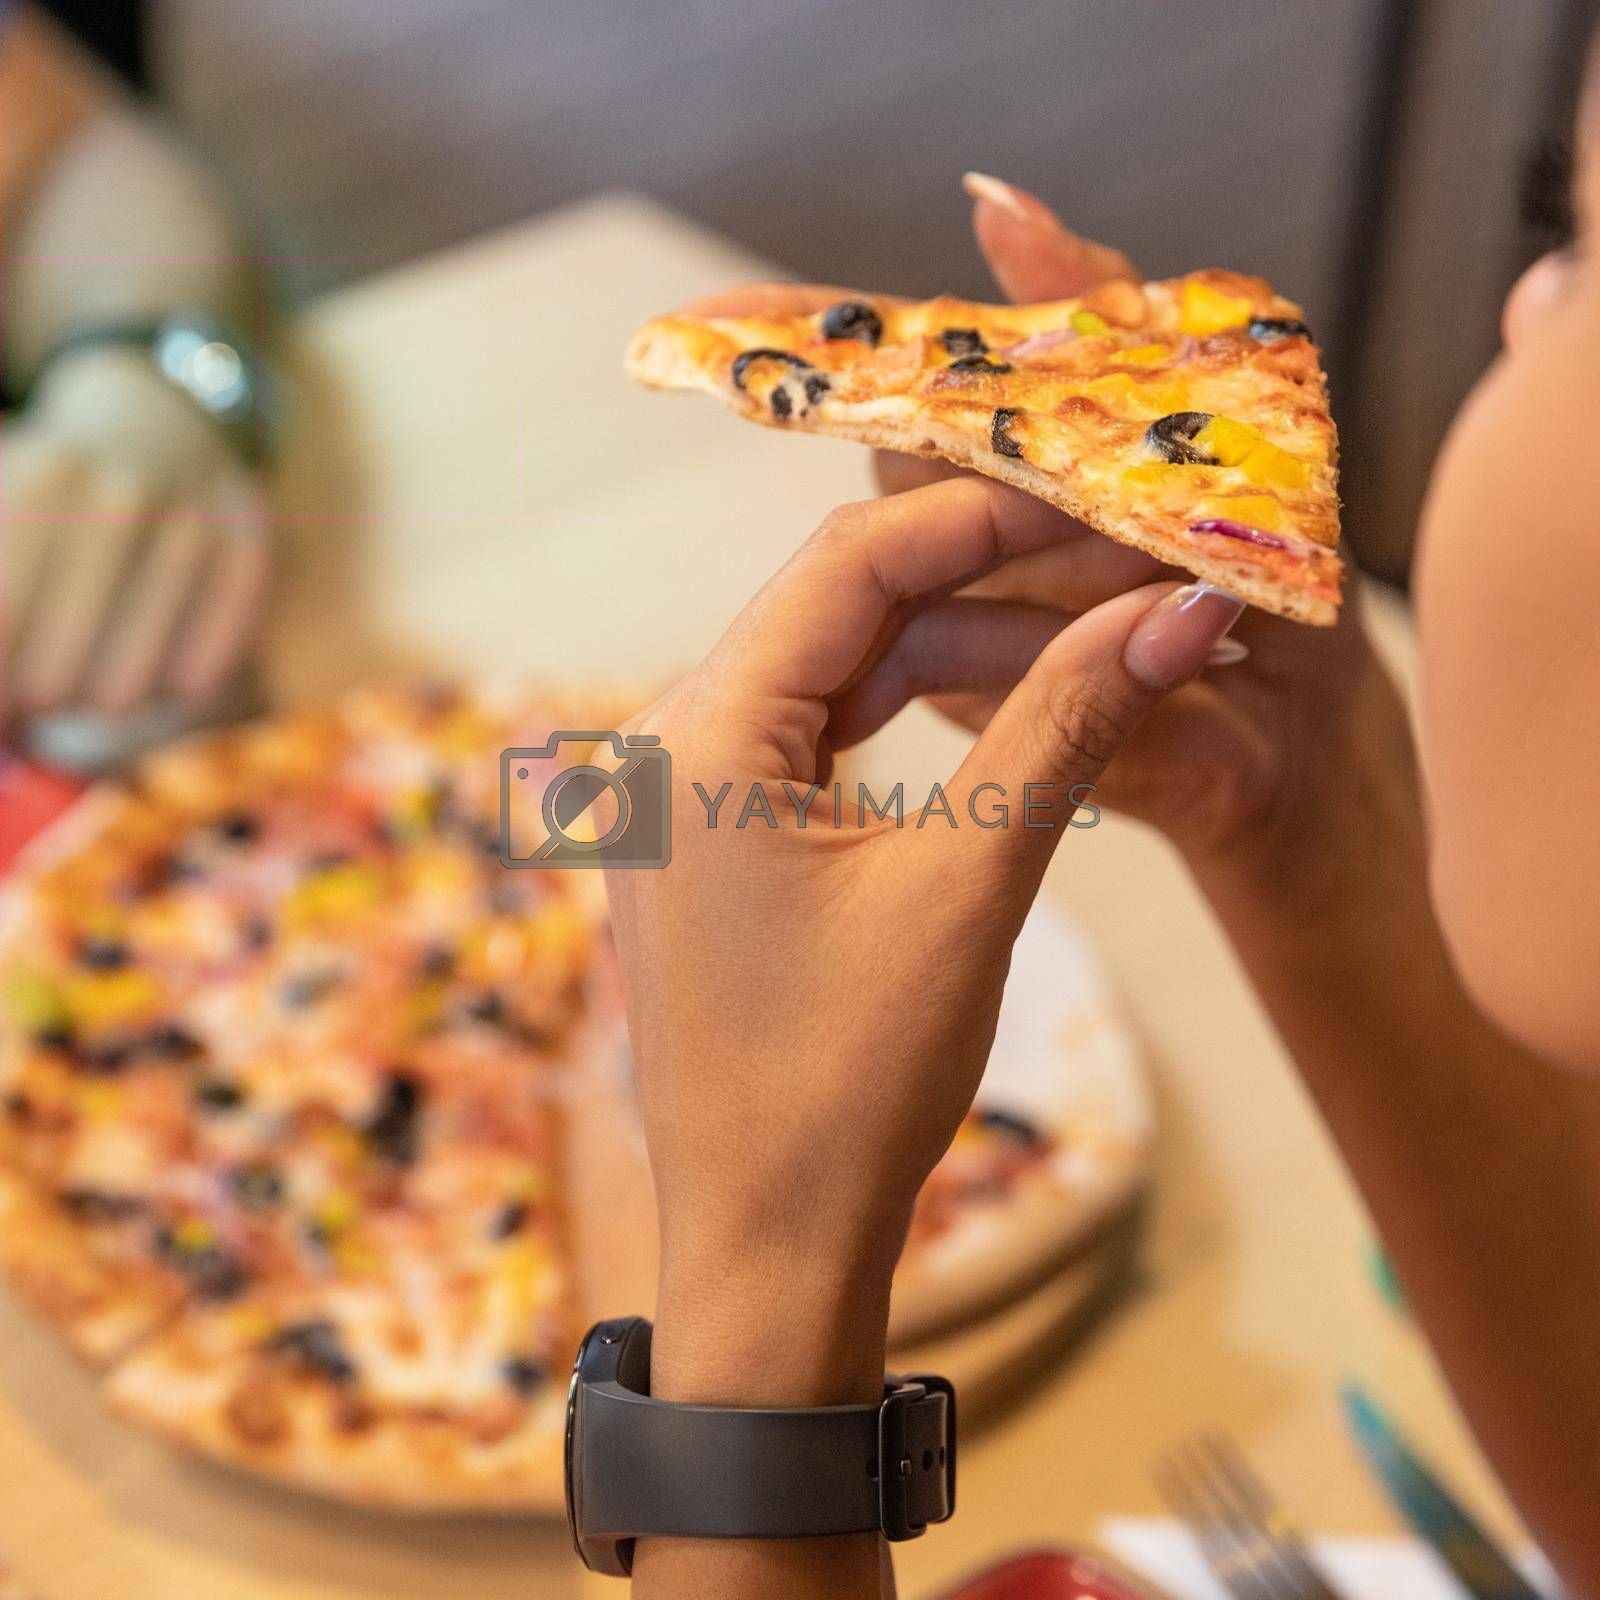 Woman eating tasty pizza, close up